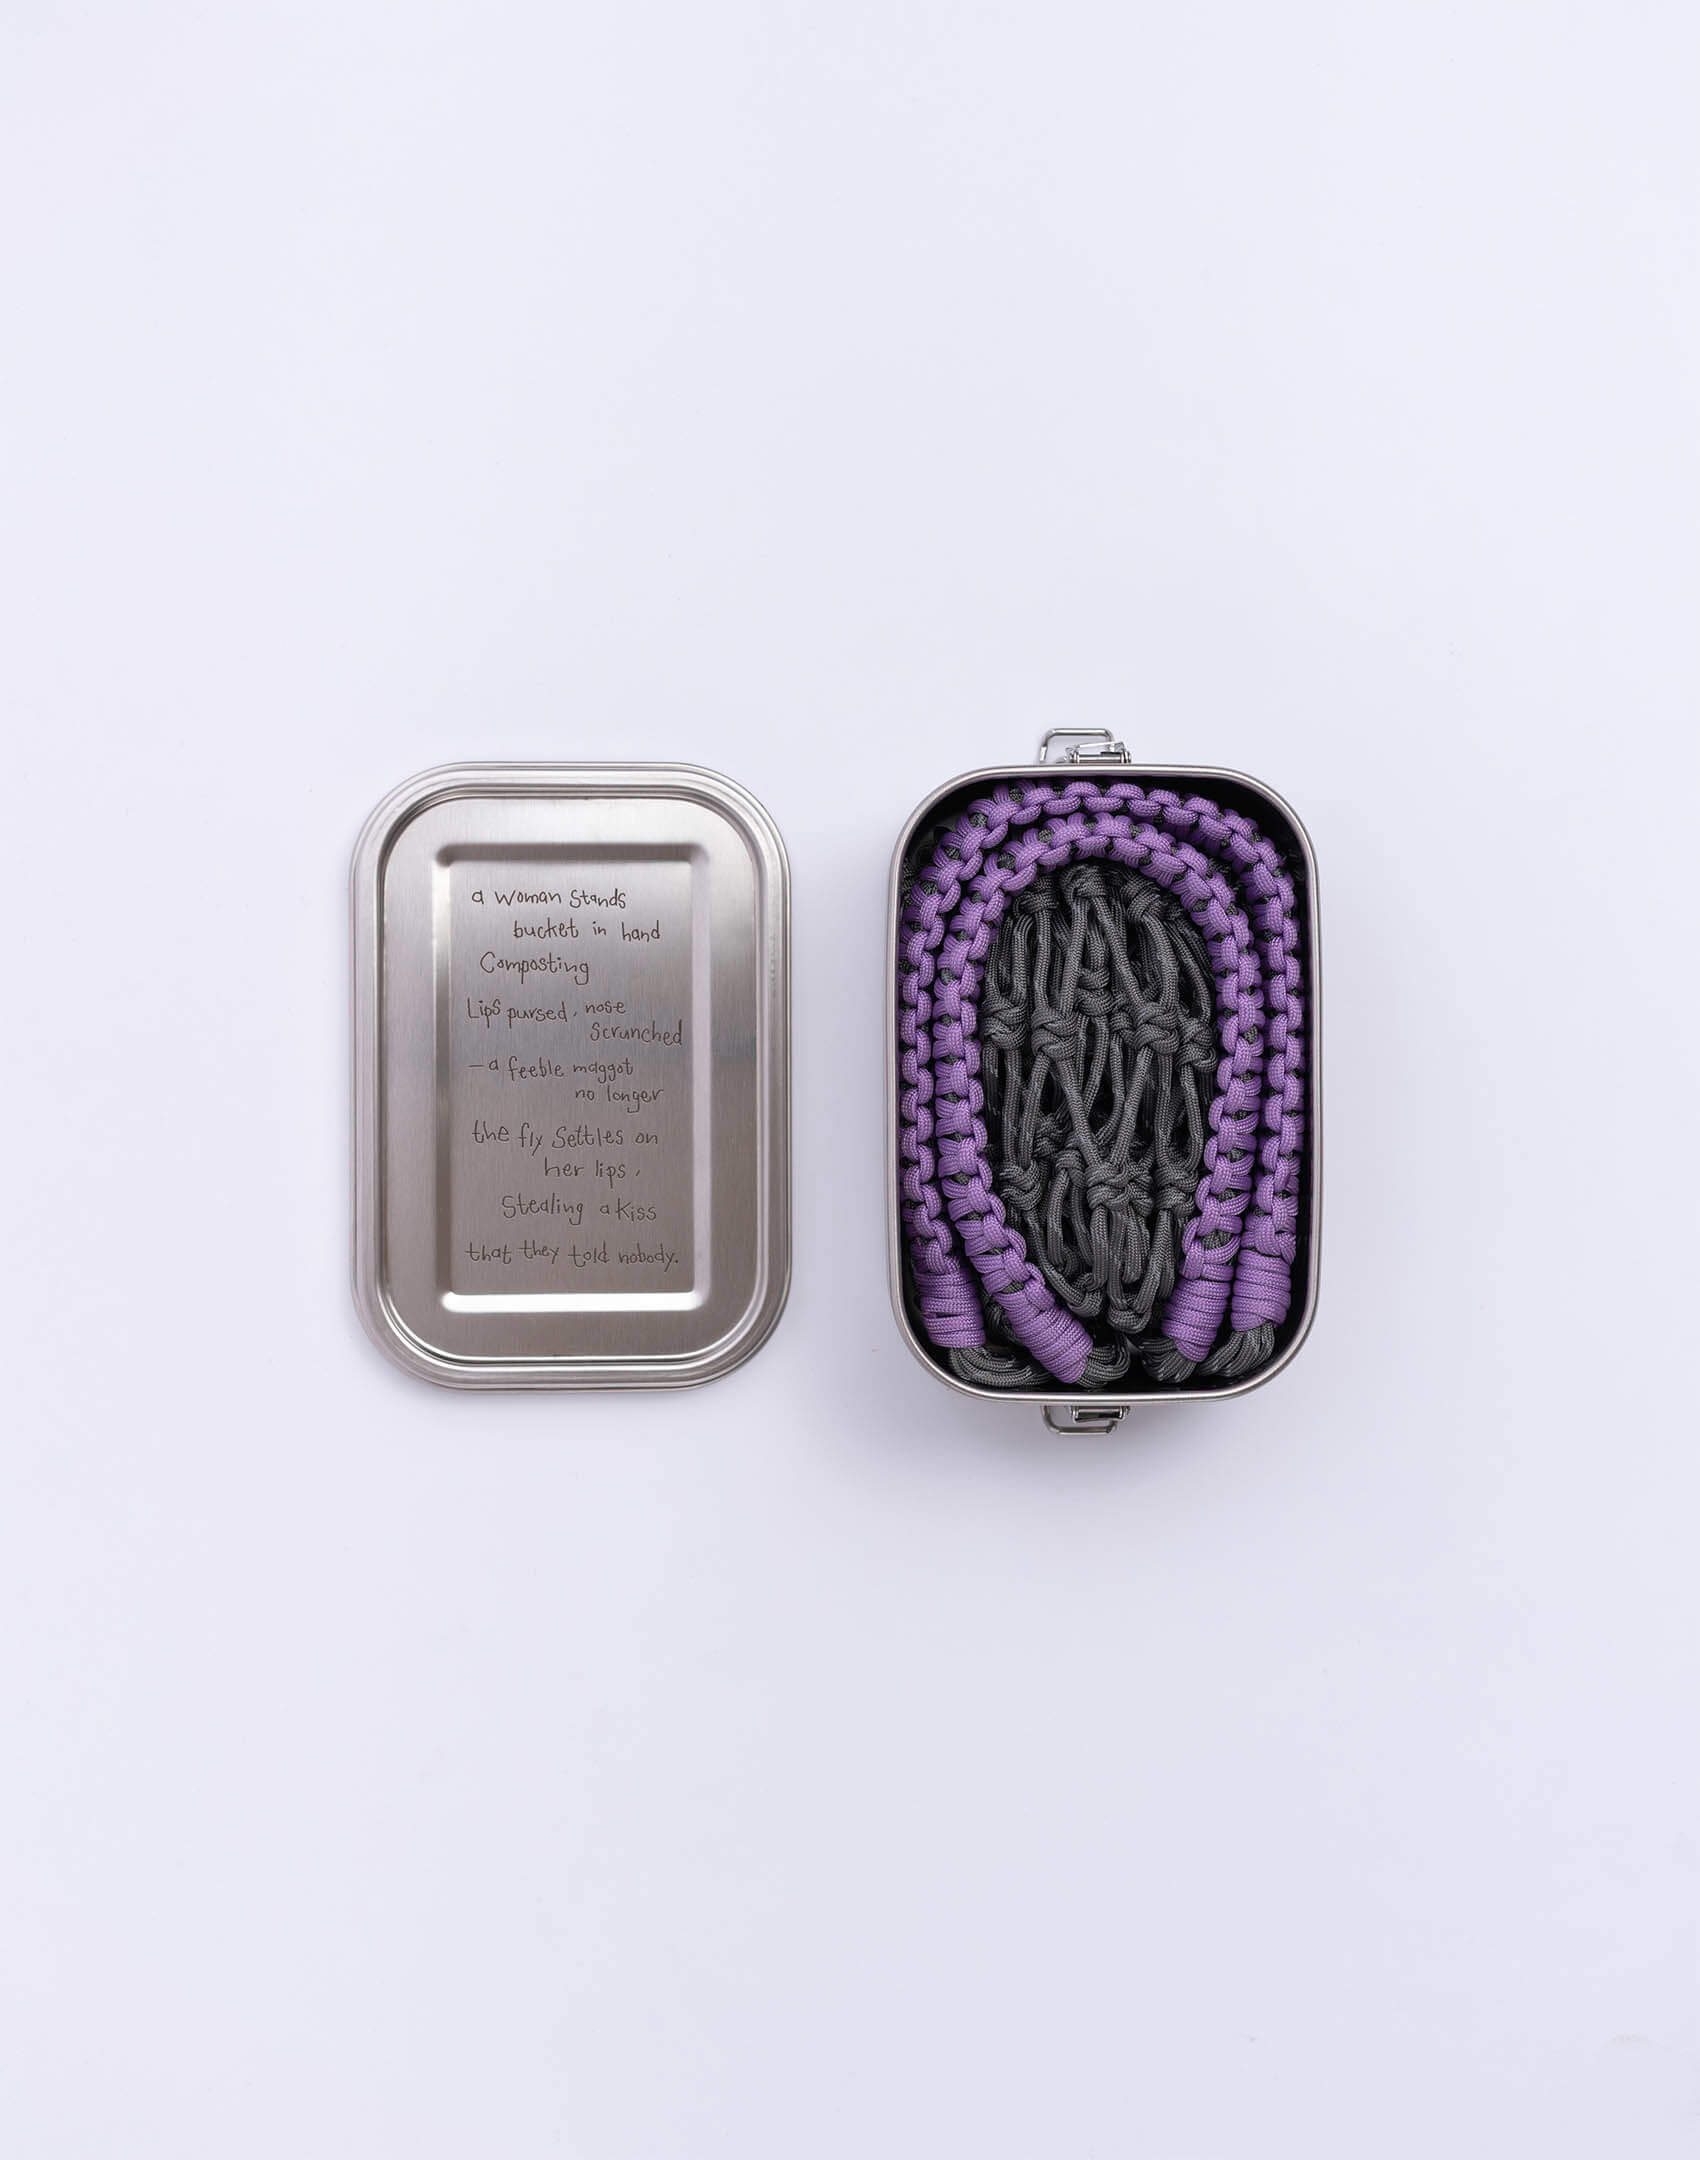 P.S. Field Bag 14 (James Baldwin), gray/lilac colorway. Stainless steel lunchbox featuring tender love poem between a woman and fly.